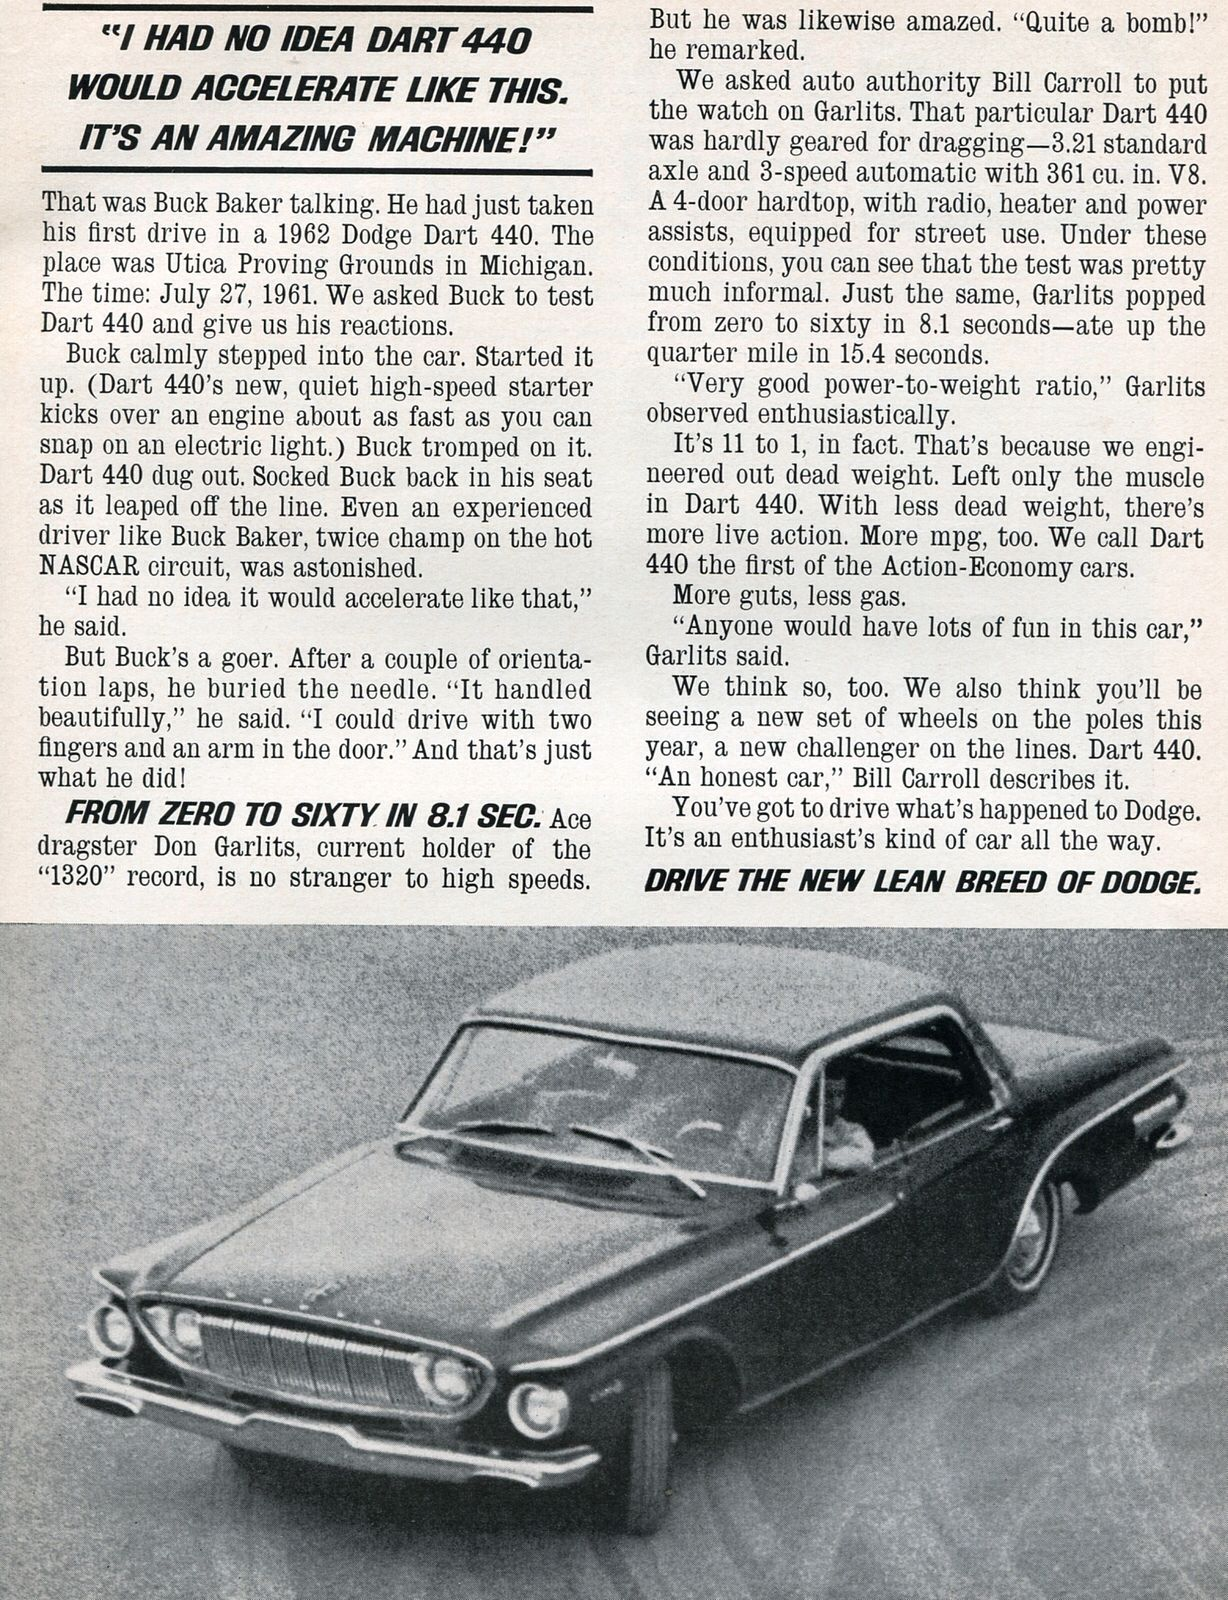 1962 Dodge Dart 440 Advertisement Sports Car Graphic December 1961